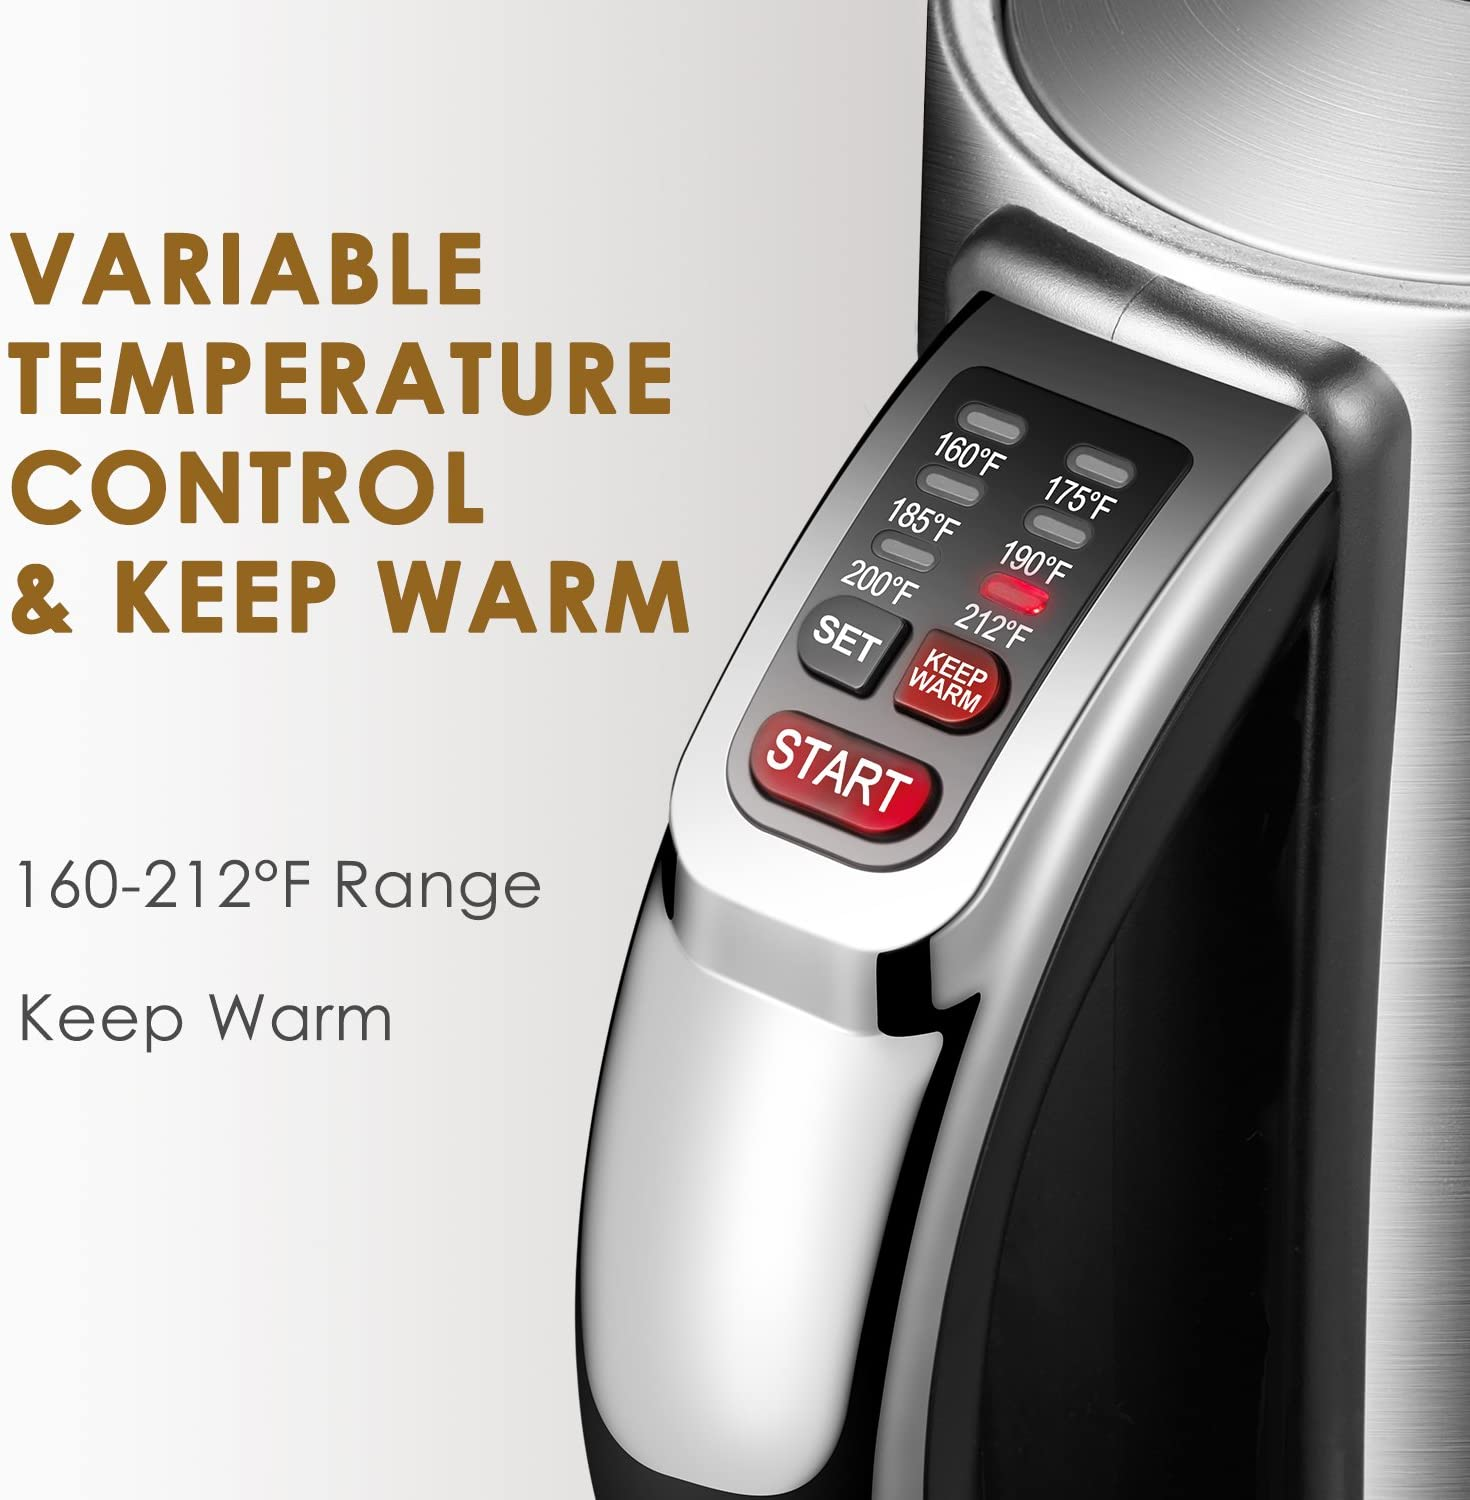 Electric kettle, Aicok Temperature Control kettle with 2 Hours Keep Warm Function, 1.7L Food Grade Stainless Steel Water Boiler, Double Water Indicator, BPA Free, 2200W, 2 Year Warranty